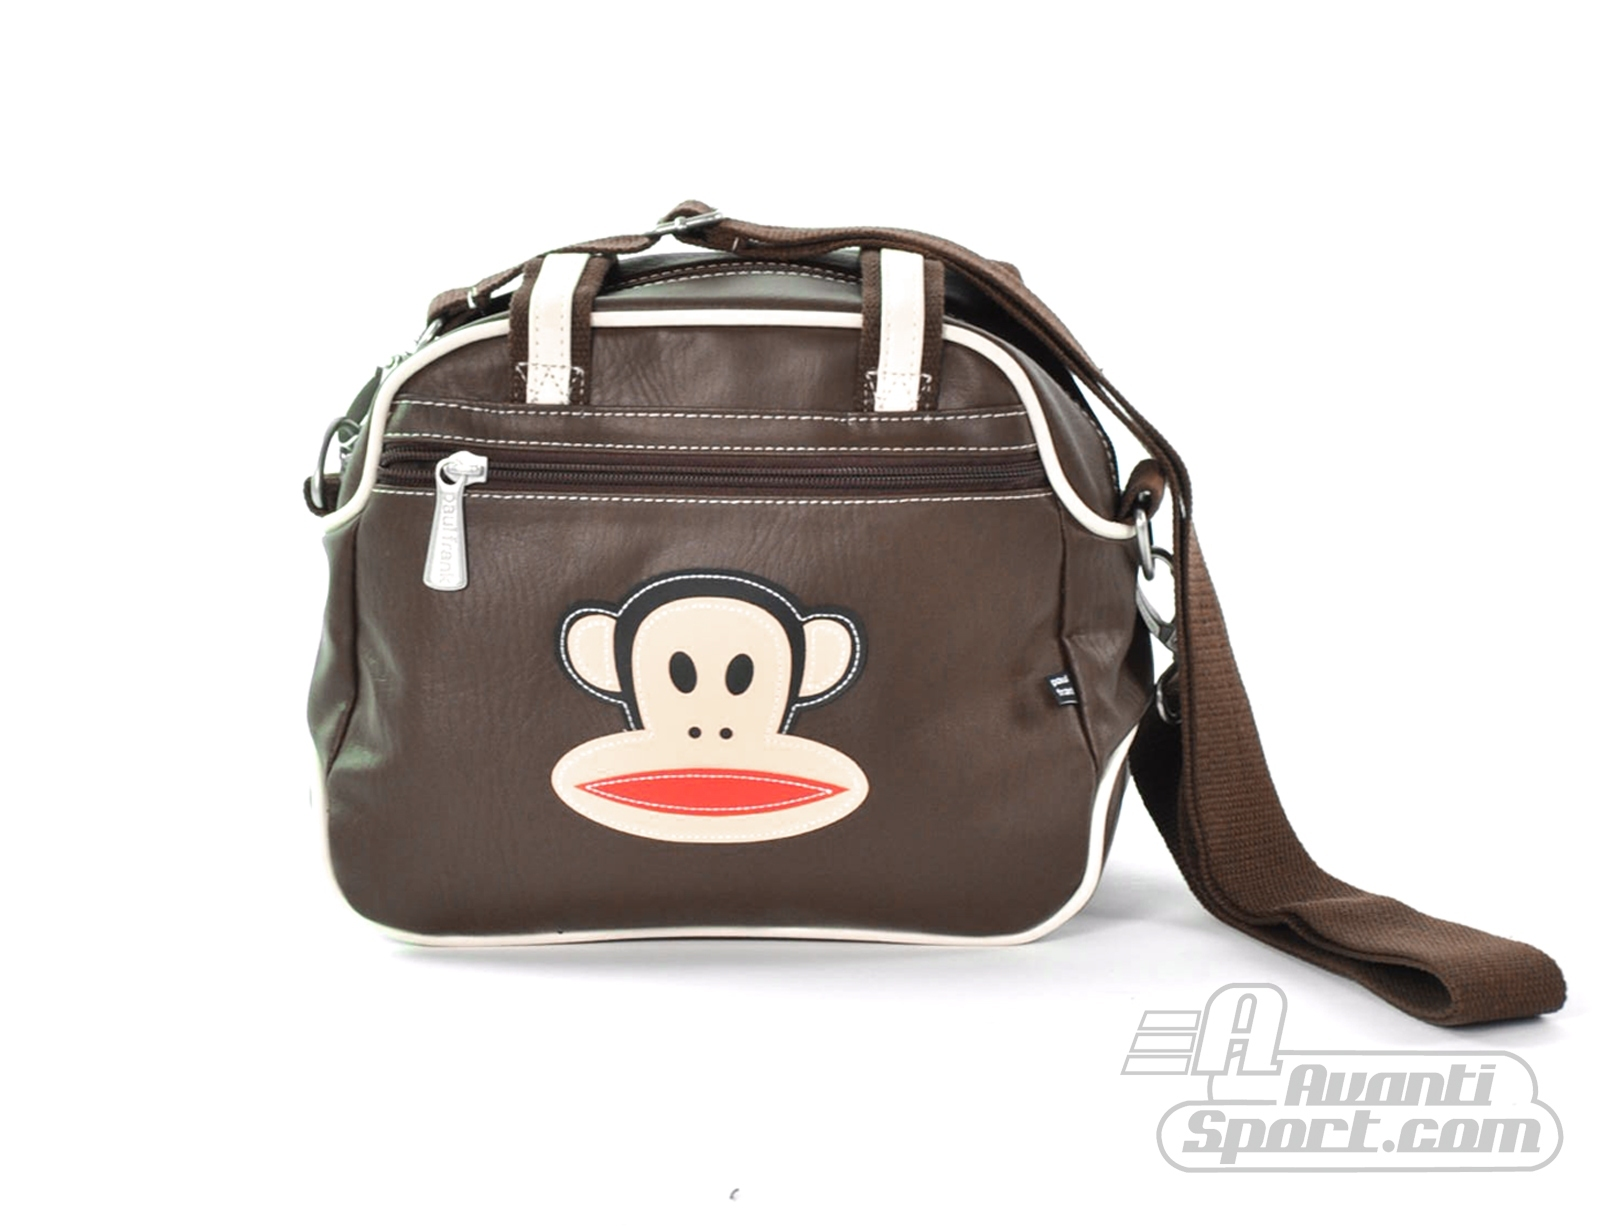 Schoudertas Paul Frank : Paul frank shoulder bag small tassen